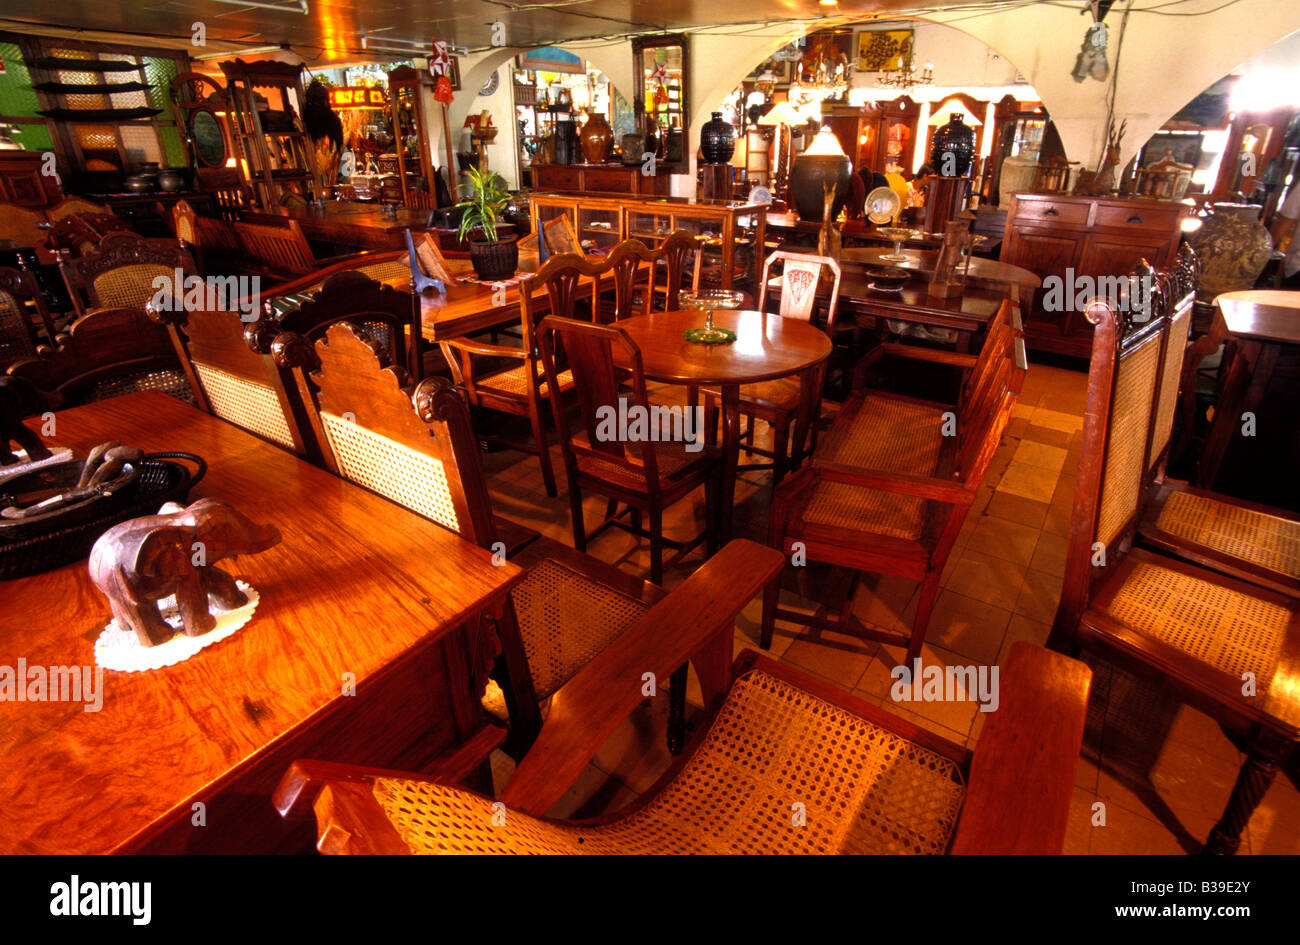 Antique furniture at philtrade manila philippines stock photo royalty free image 19262963 alamy Home furniture online philippines